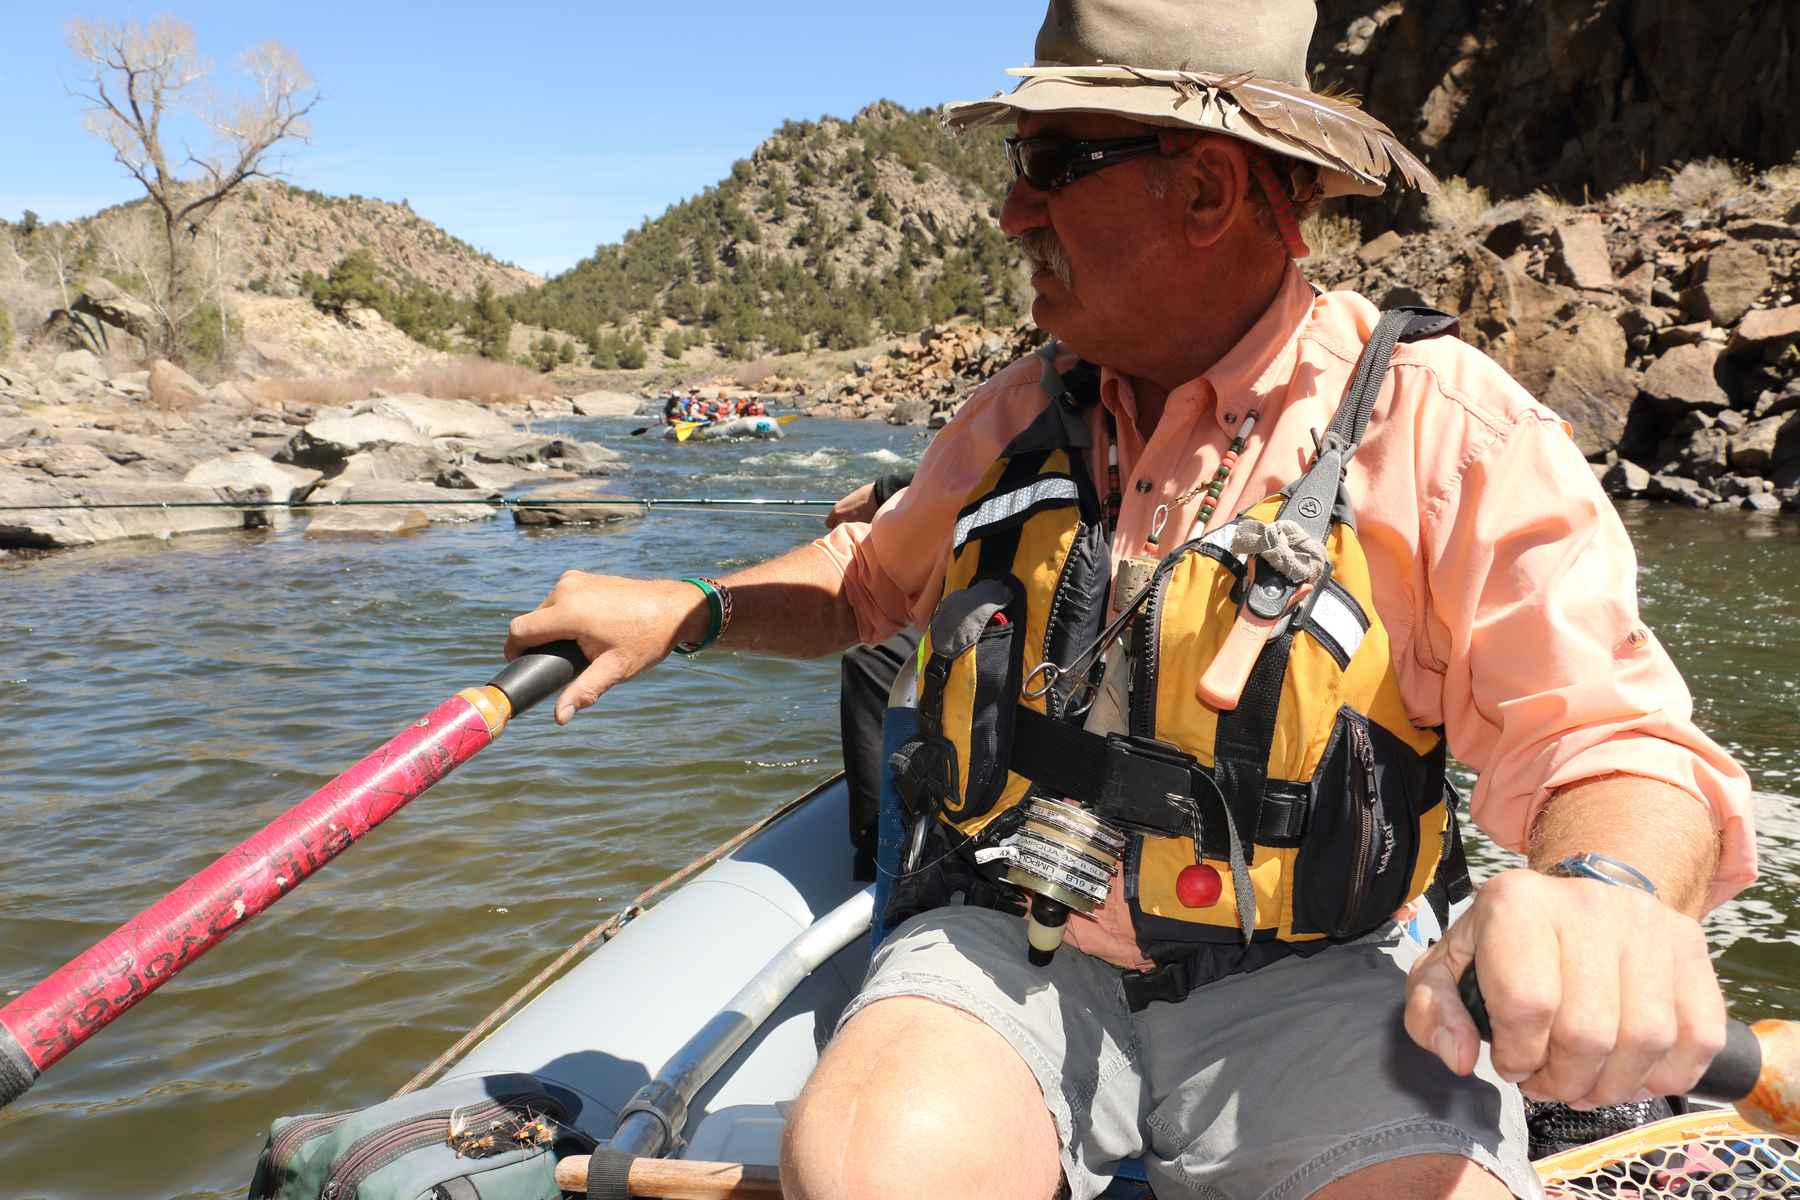 Bill Dvorak, Dvorak Rafting and Kayaking Expeditions